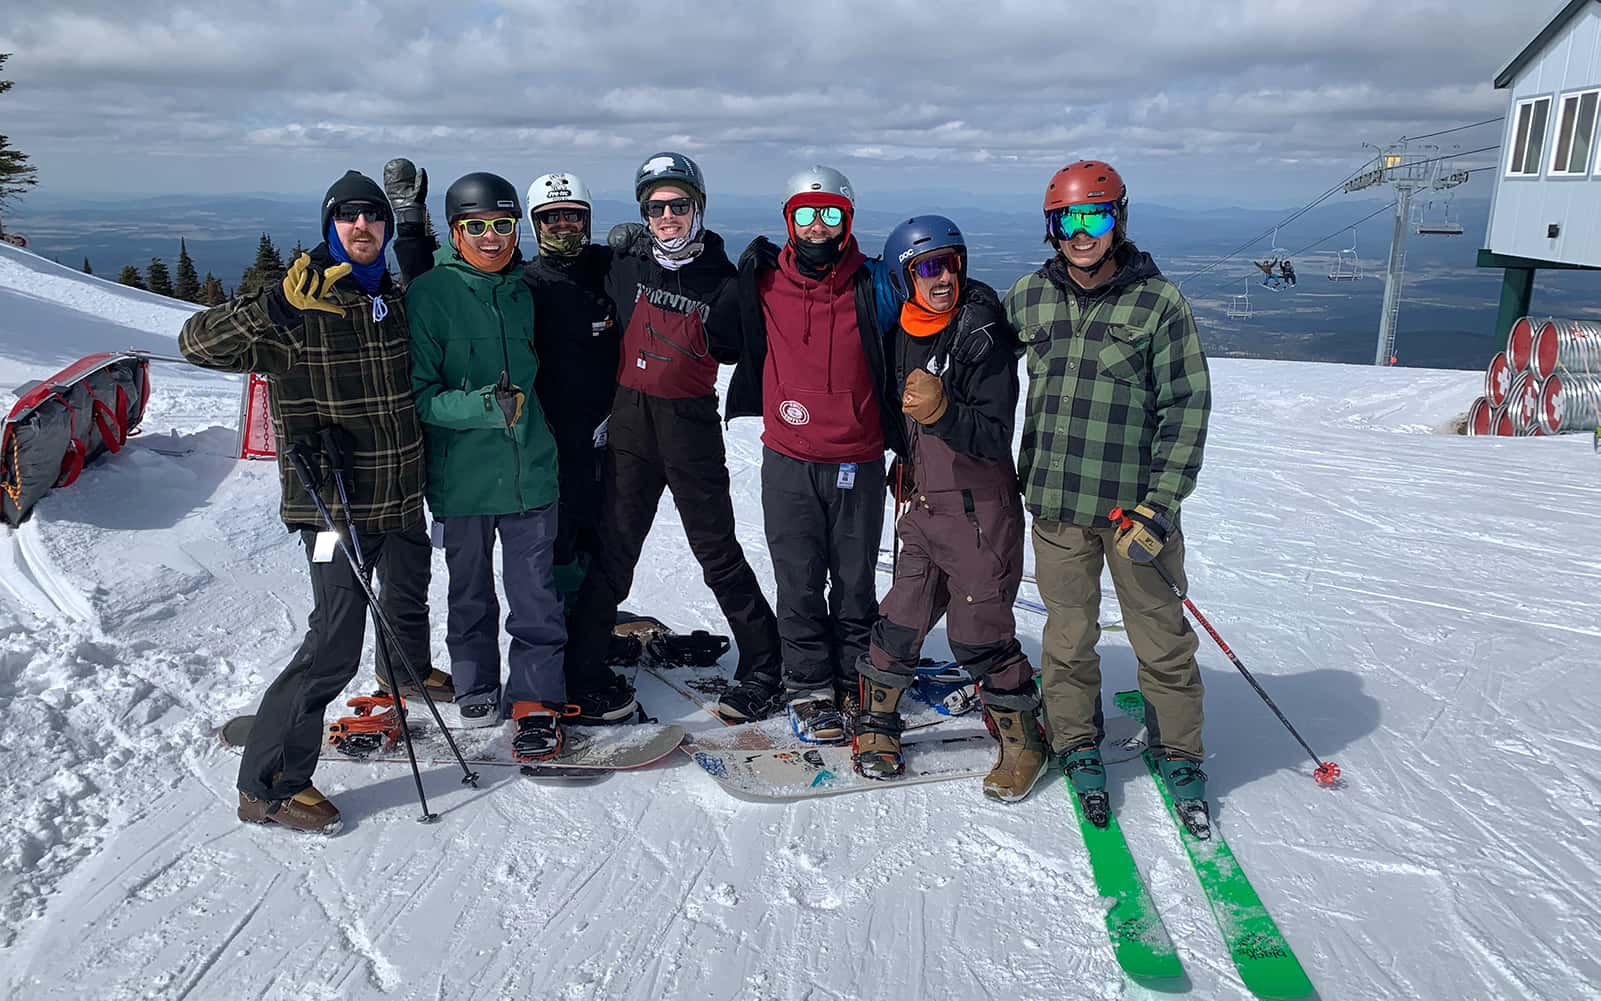 Mike Bailey with his Snowboarder and Skiers for Christ friends.